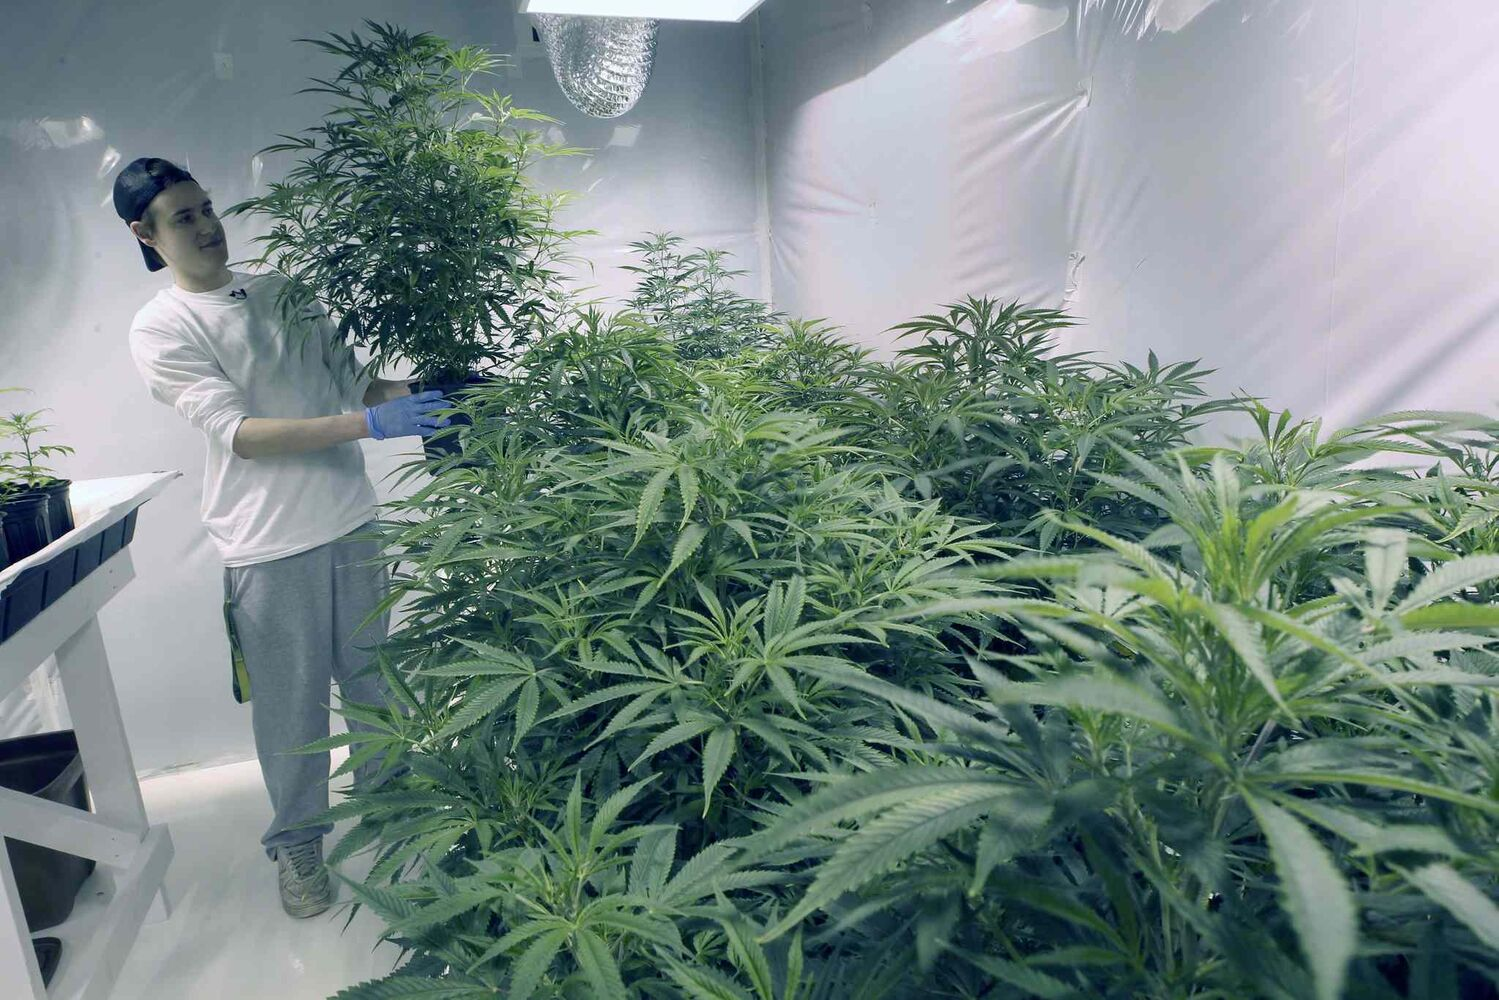 John Arbuthnot, VP of Delta 9 Bio-tech, tends to medical marijuana being produced in Winnipeg. The company currently has 1000 plants producing $3-million worth product.